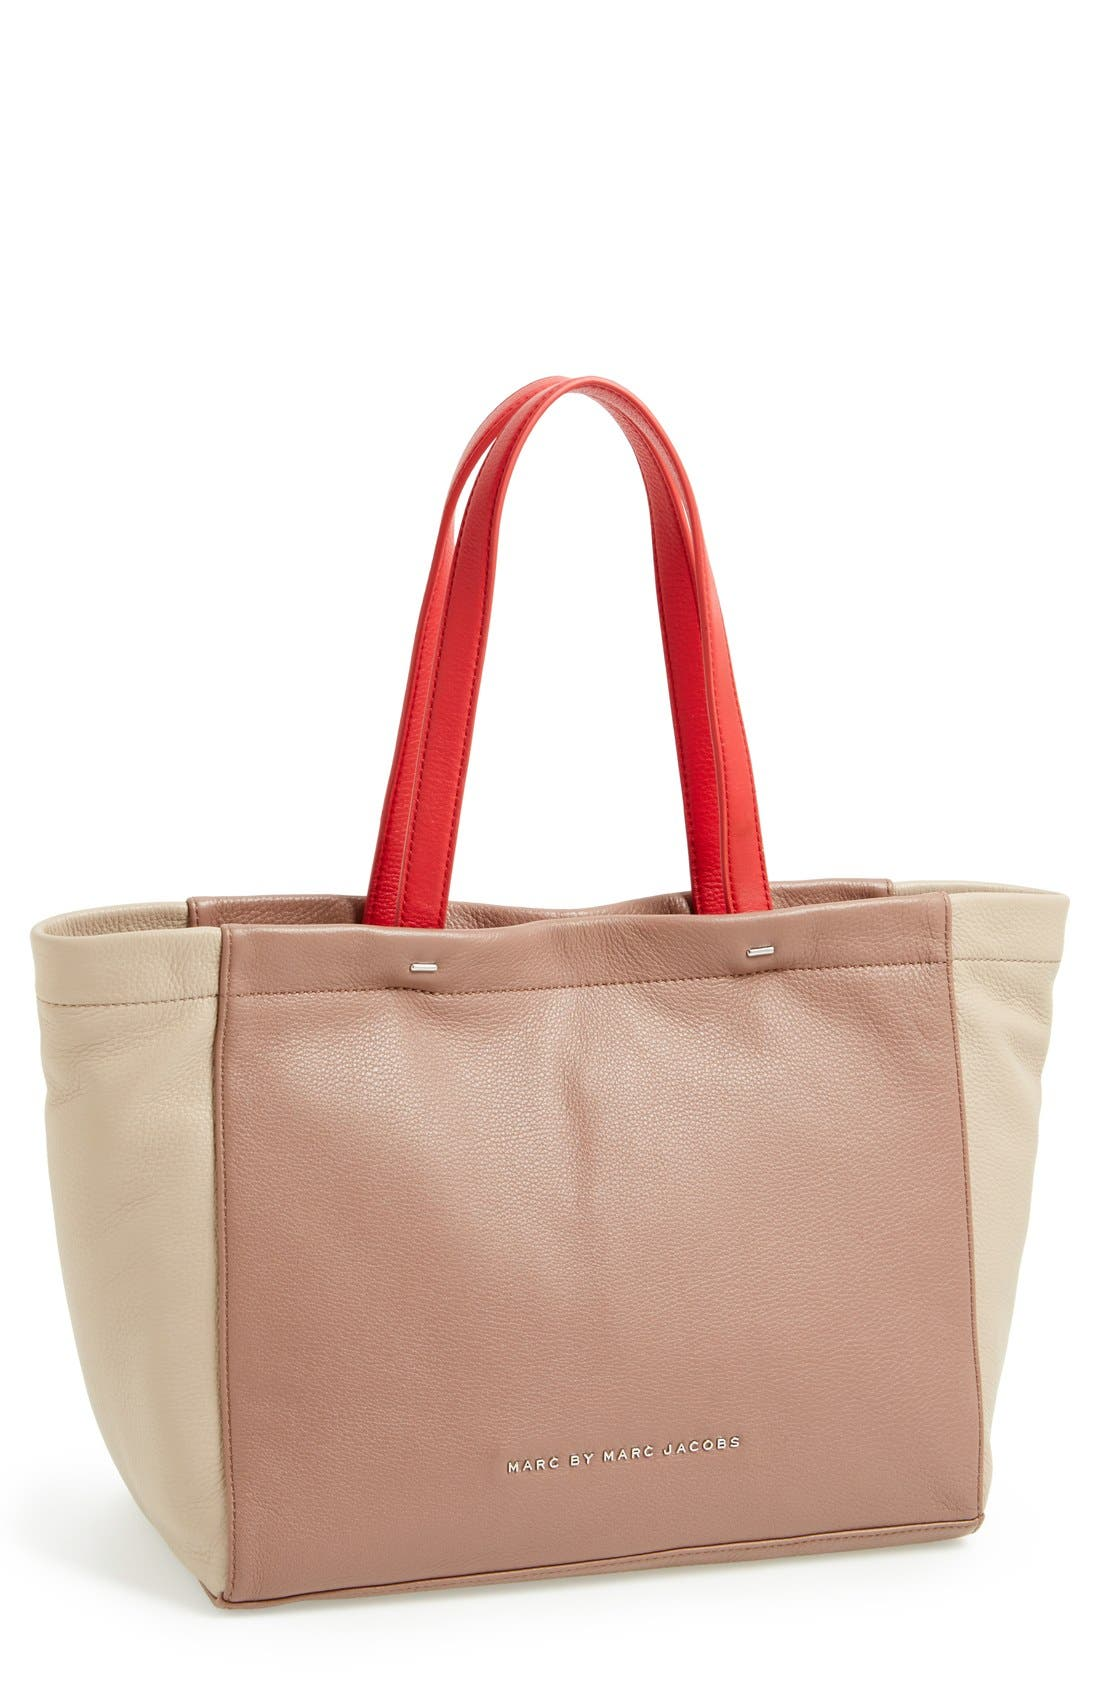 Main Image - MARC BY MARC JACOBS 'What's the T' Leather Tote